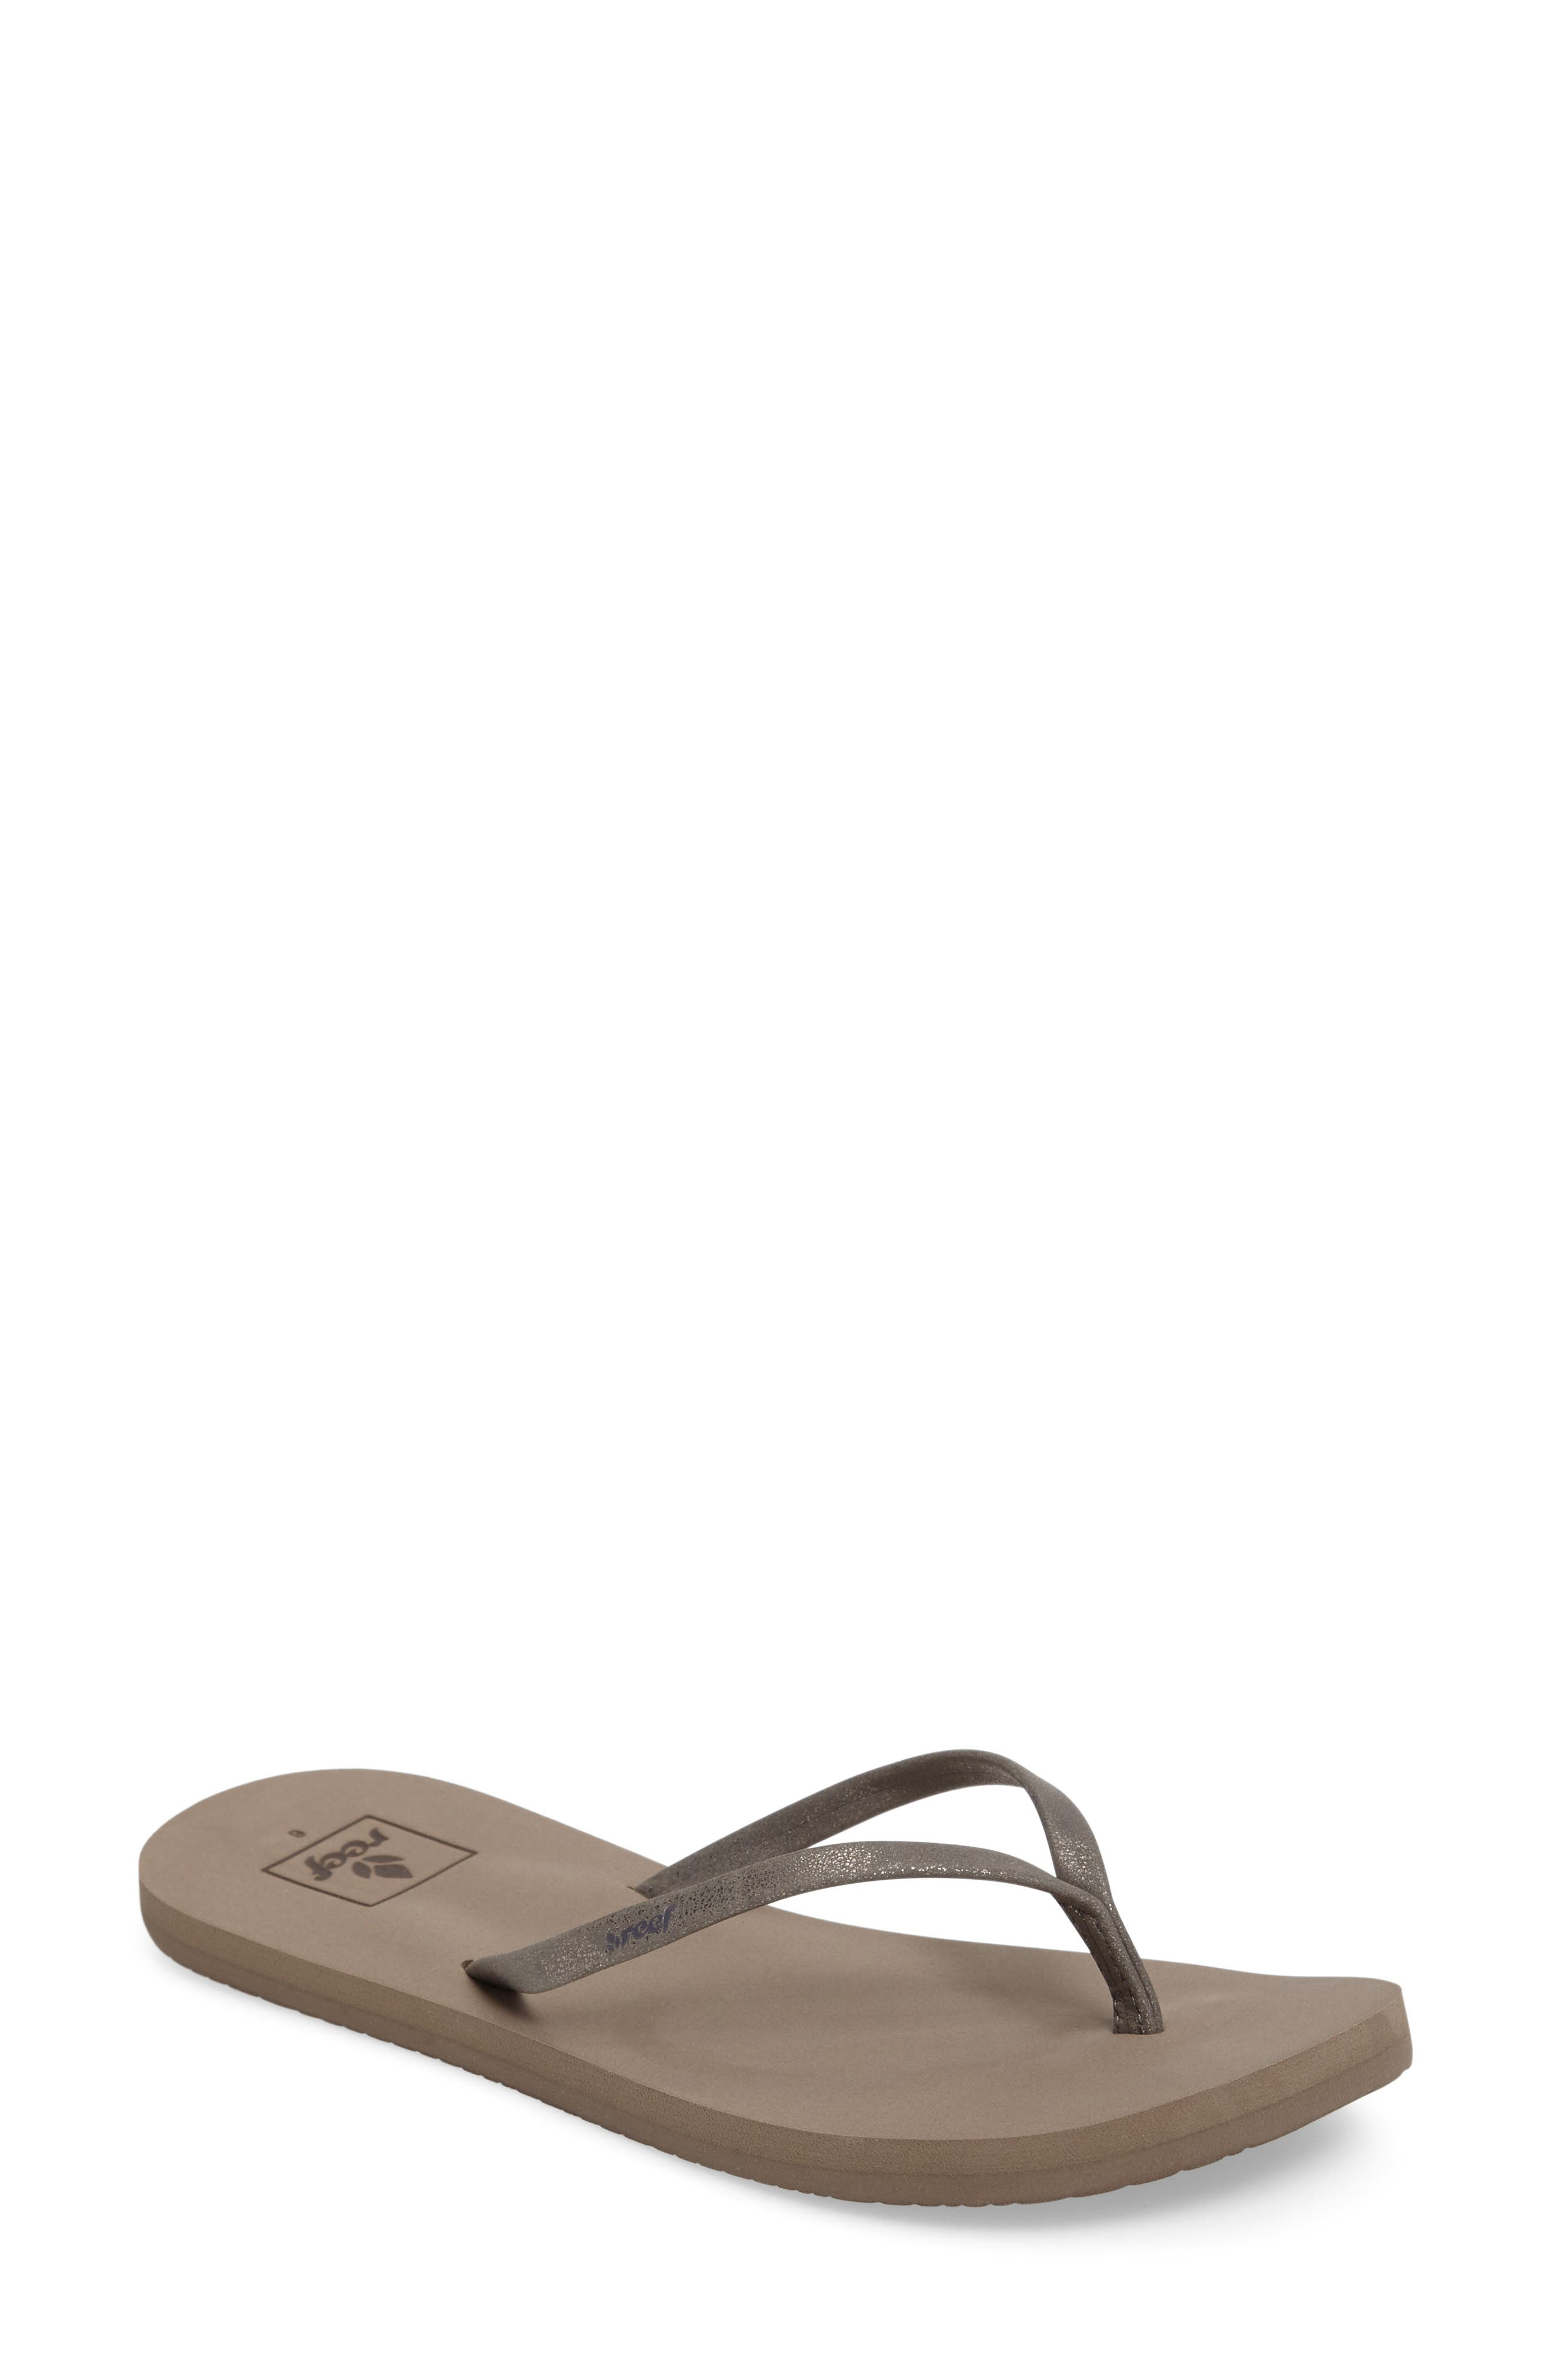 Bliss Nights Flip Flop,                             Main thumbnail 3, color,